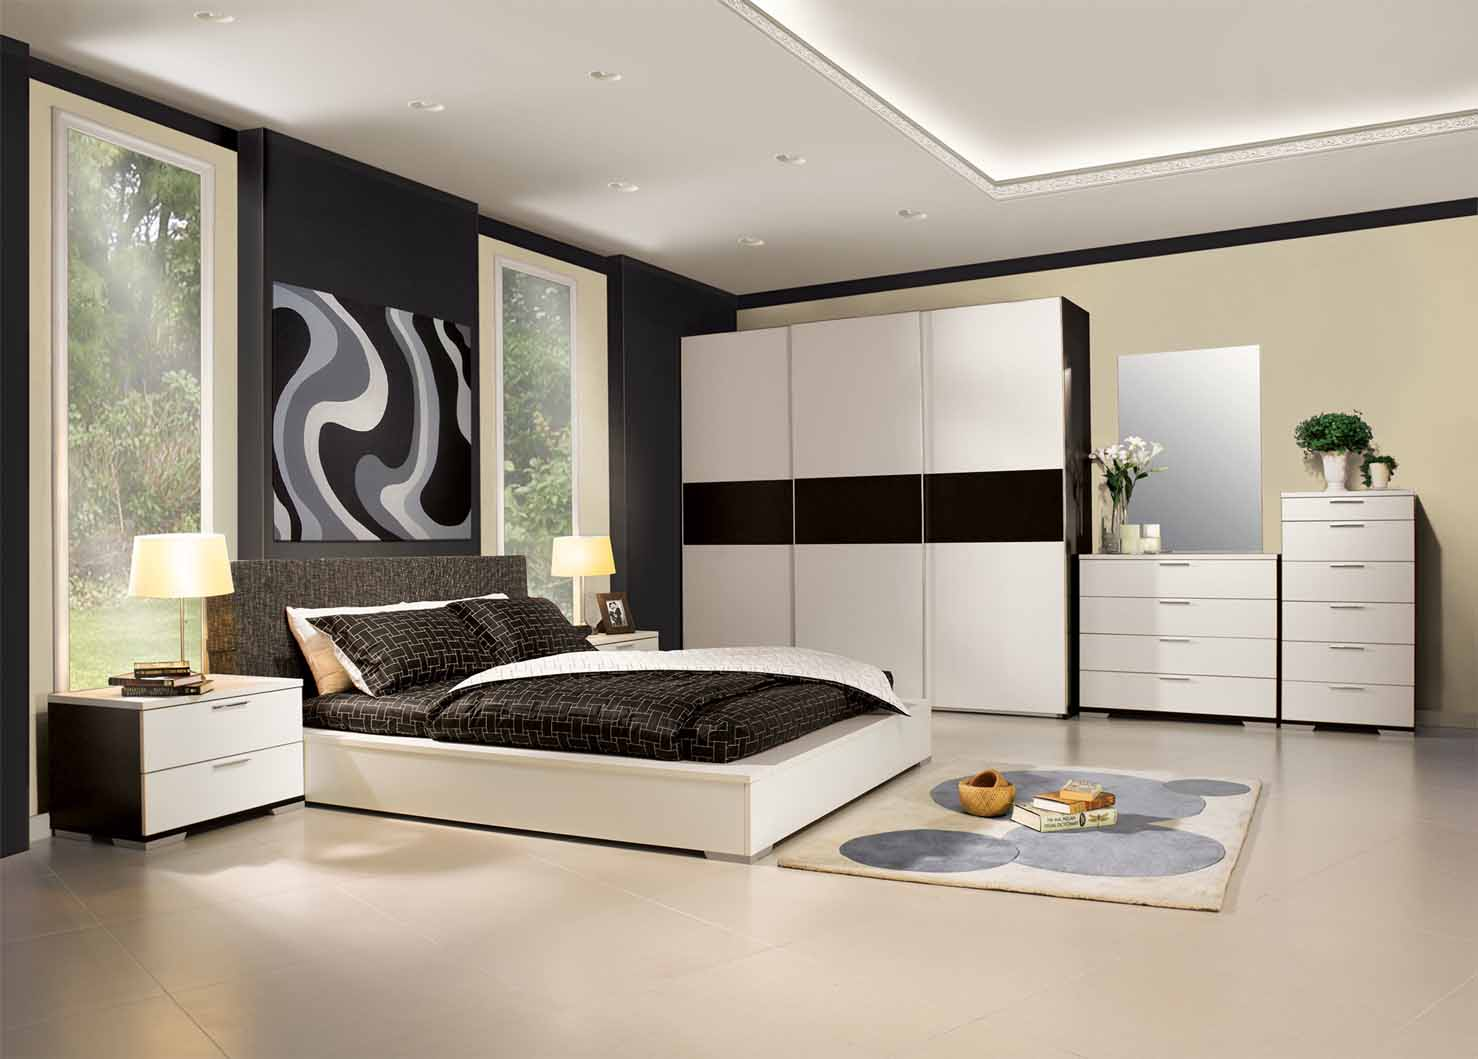 Bedroom Chairs Designs Modern Black Bedroom Furniture Popular Interior House Ideas